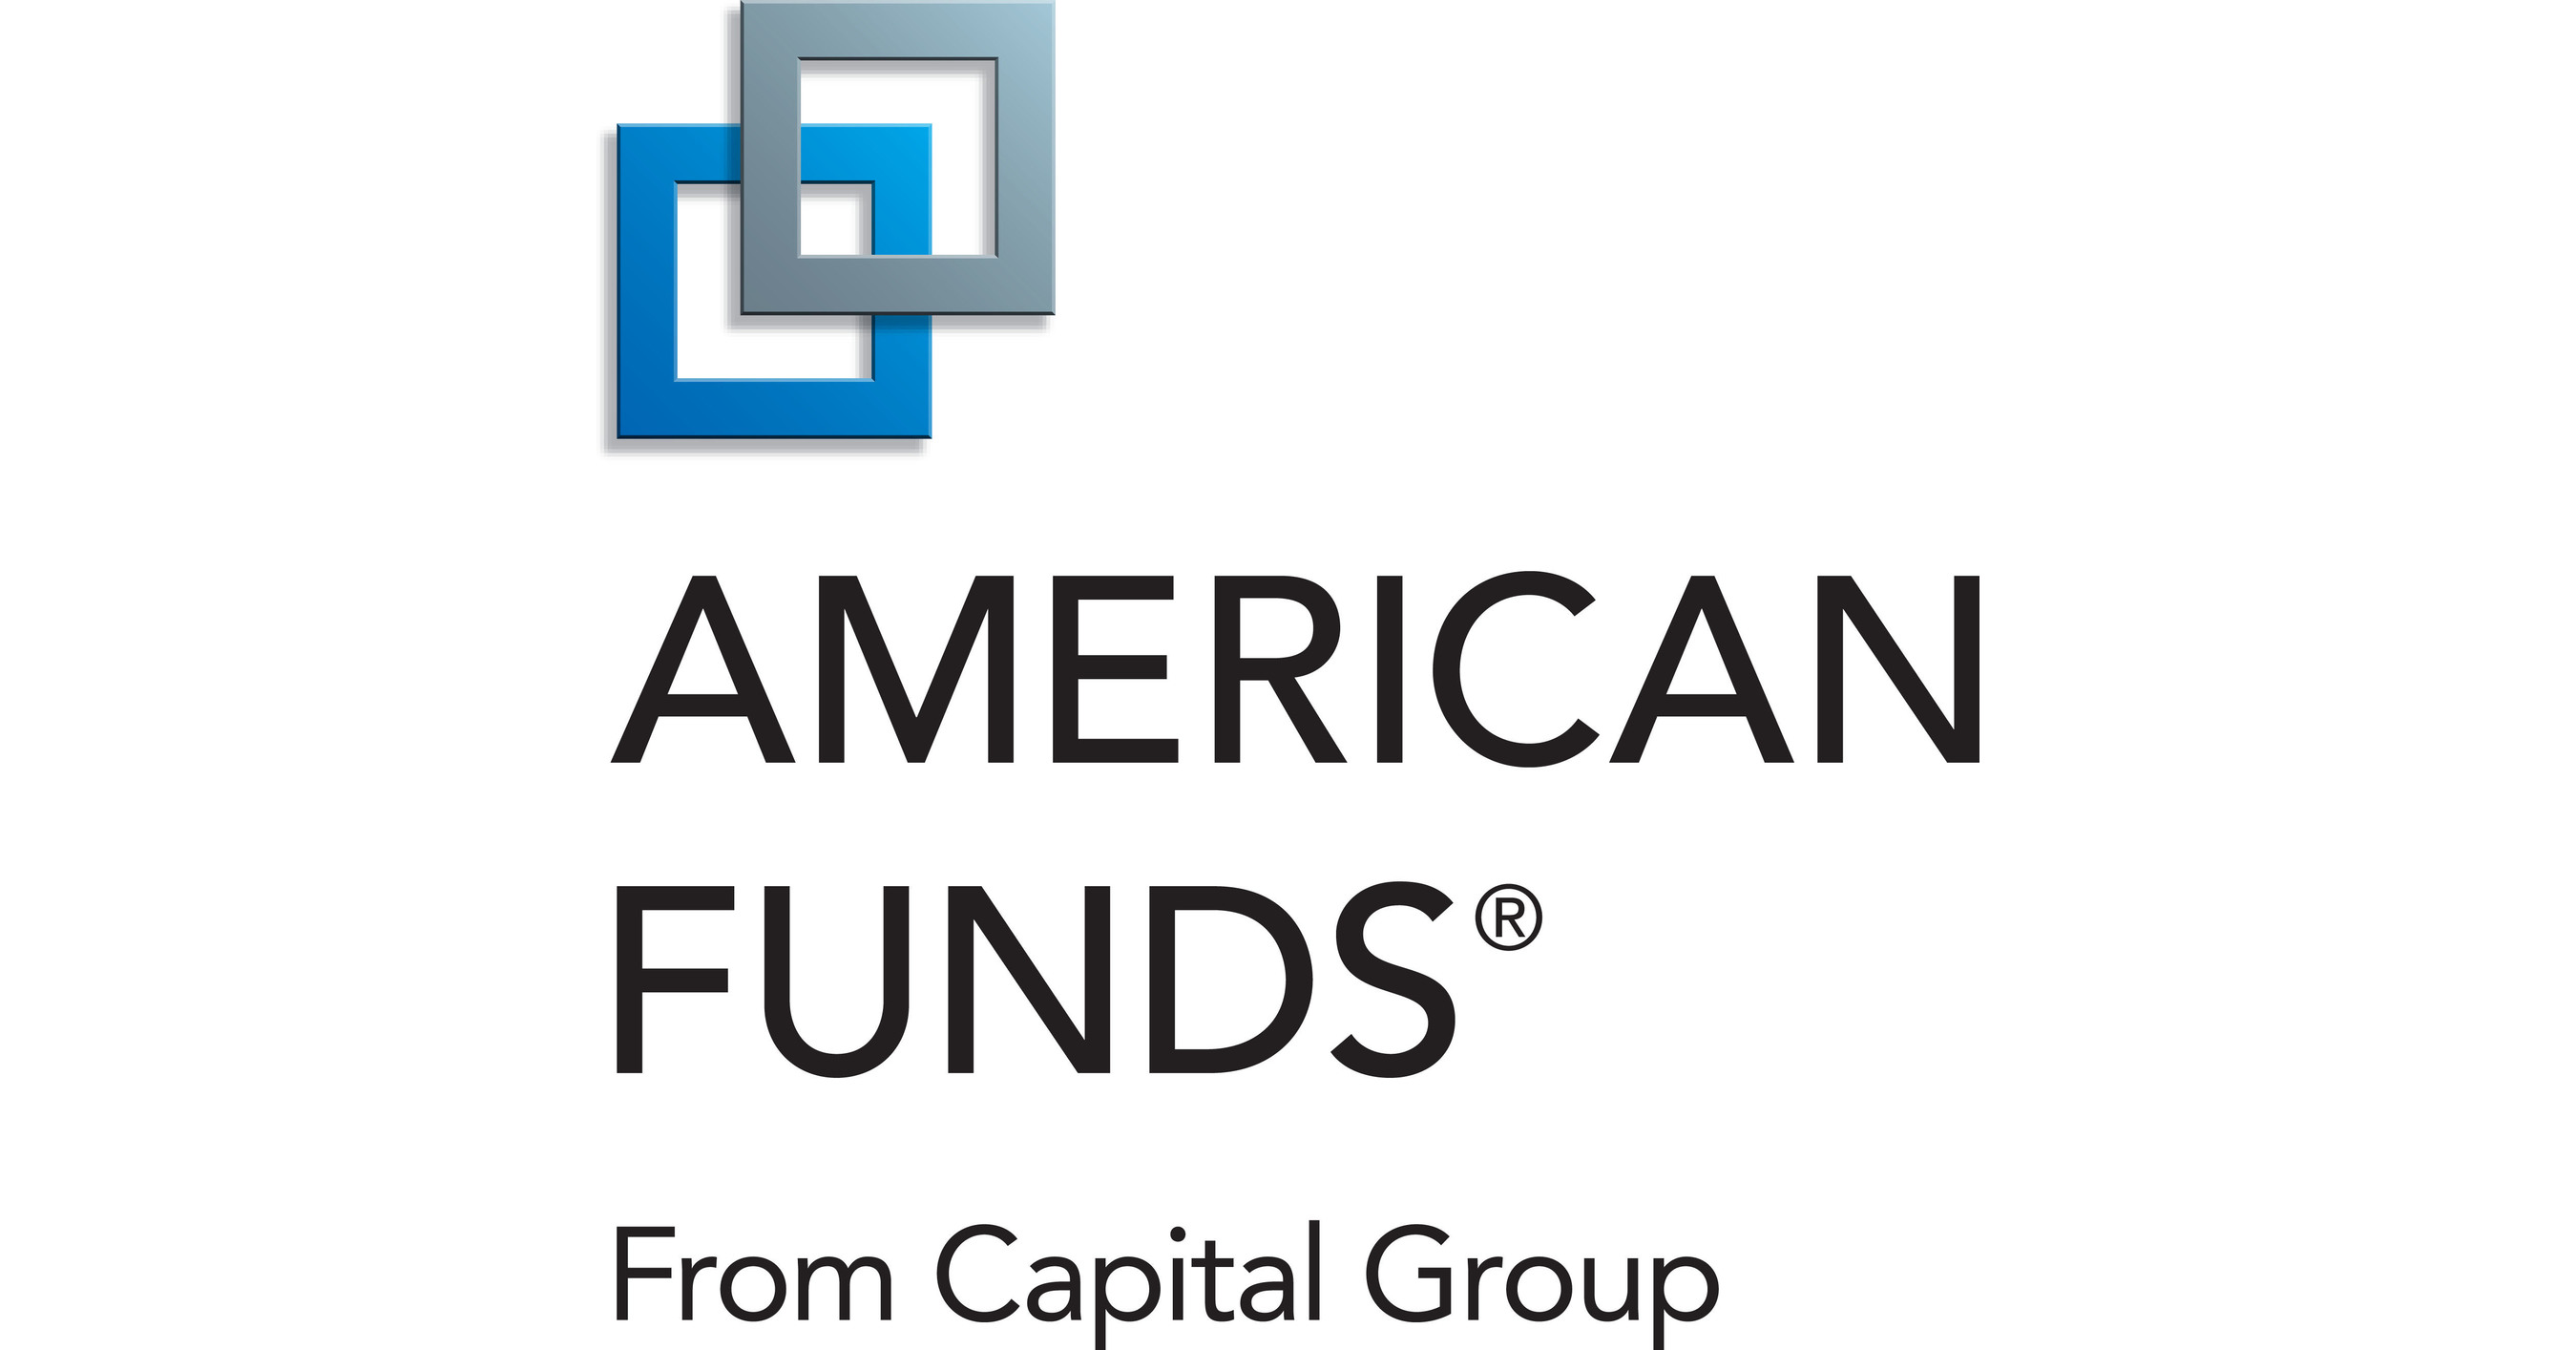 11 American Funds Selected for the Morningstar 2017